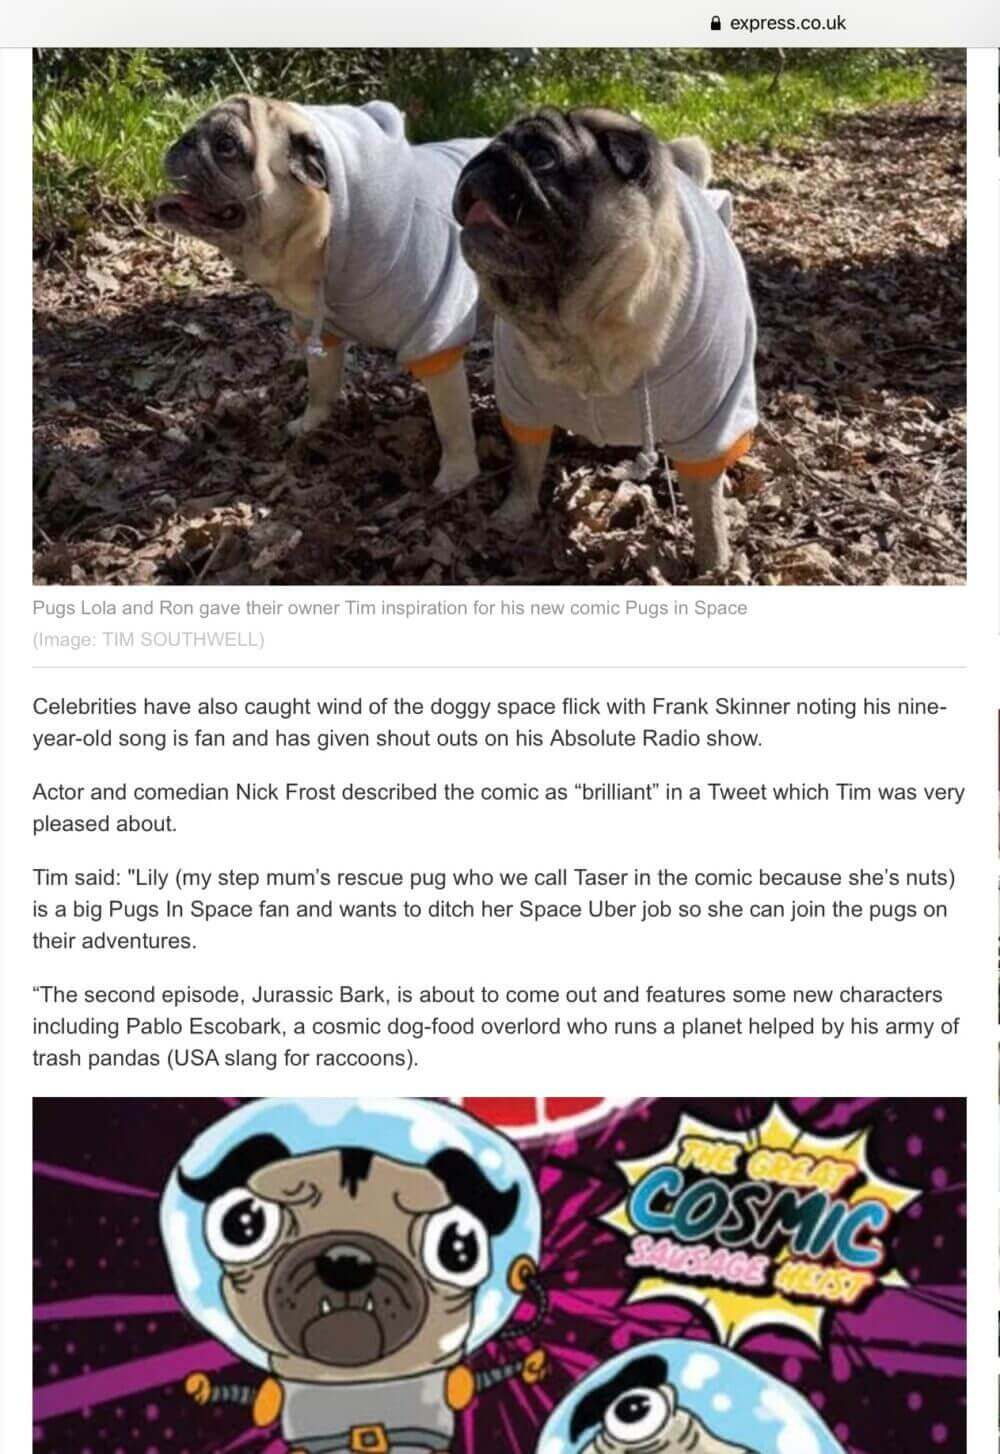 Screenshot of the Daily Express article about Pugs in Space